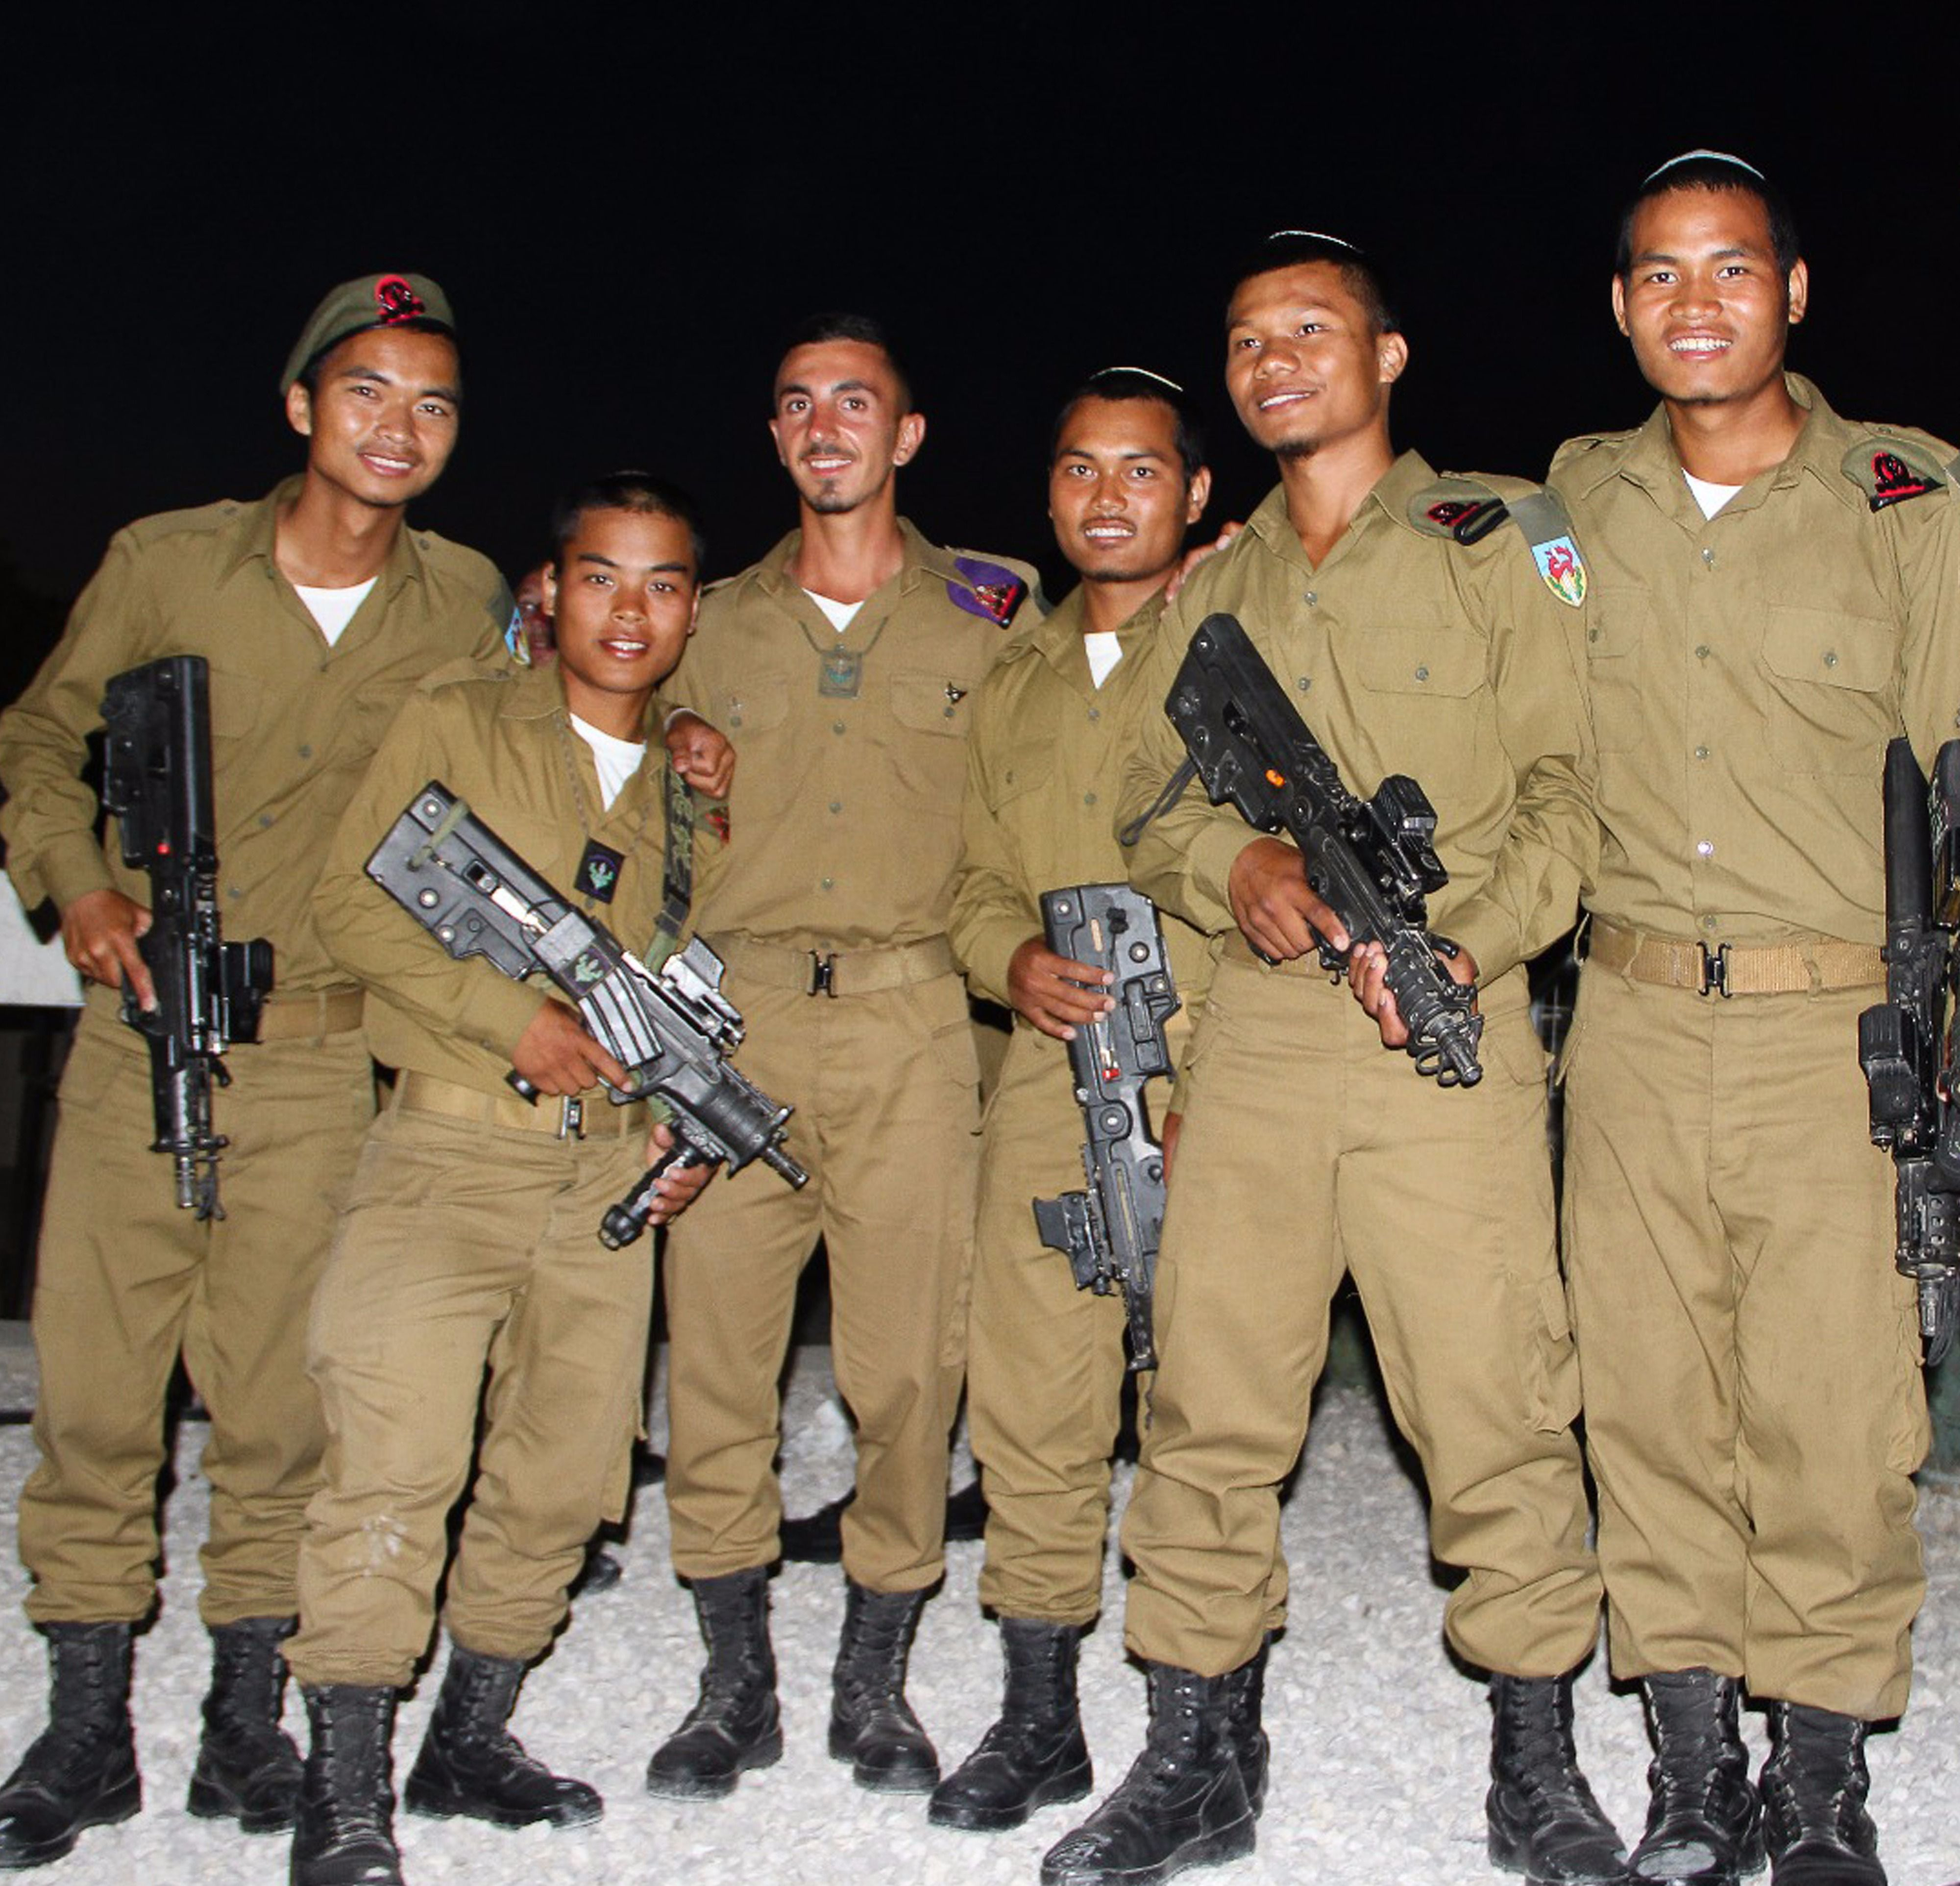 Six soldiers in the IDF from India who claim to be descended from the Tribe of Menashe.